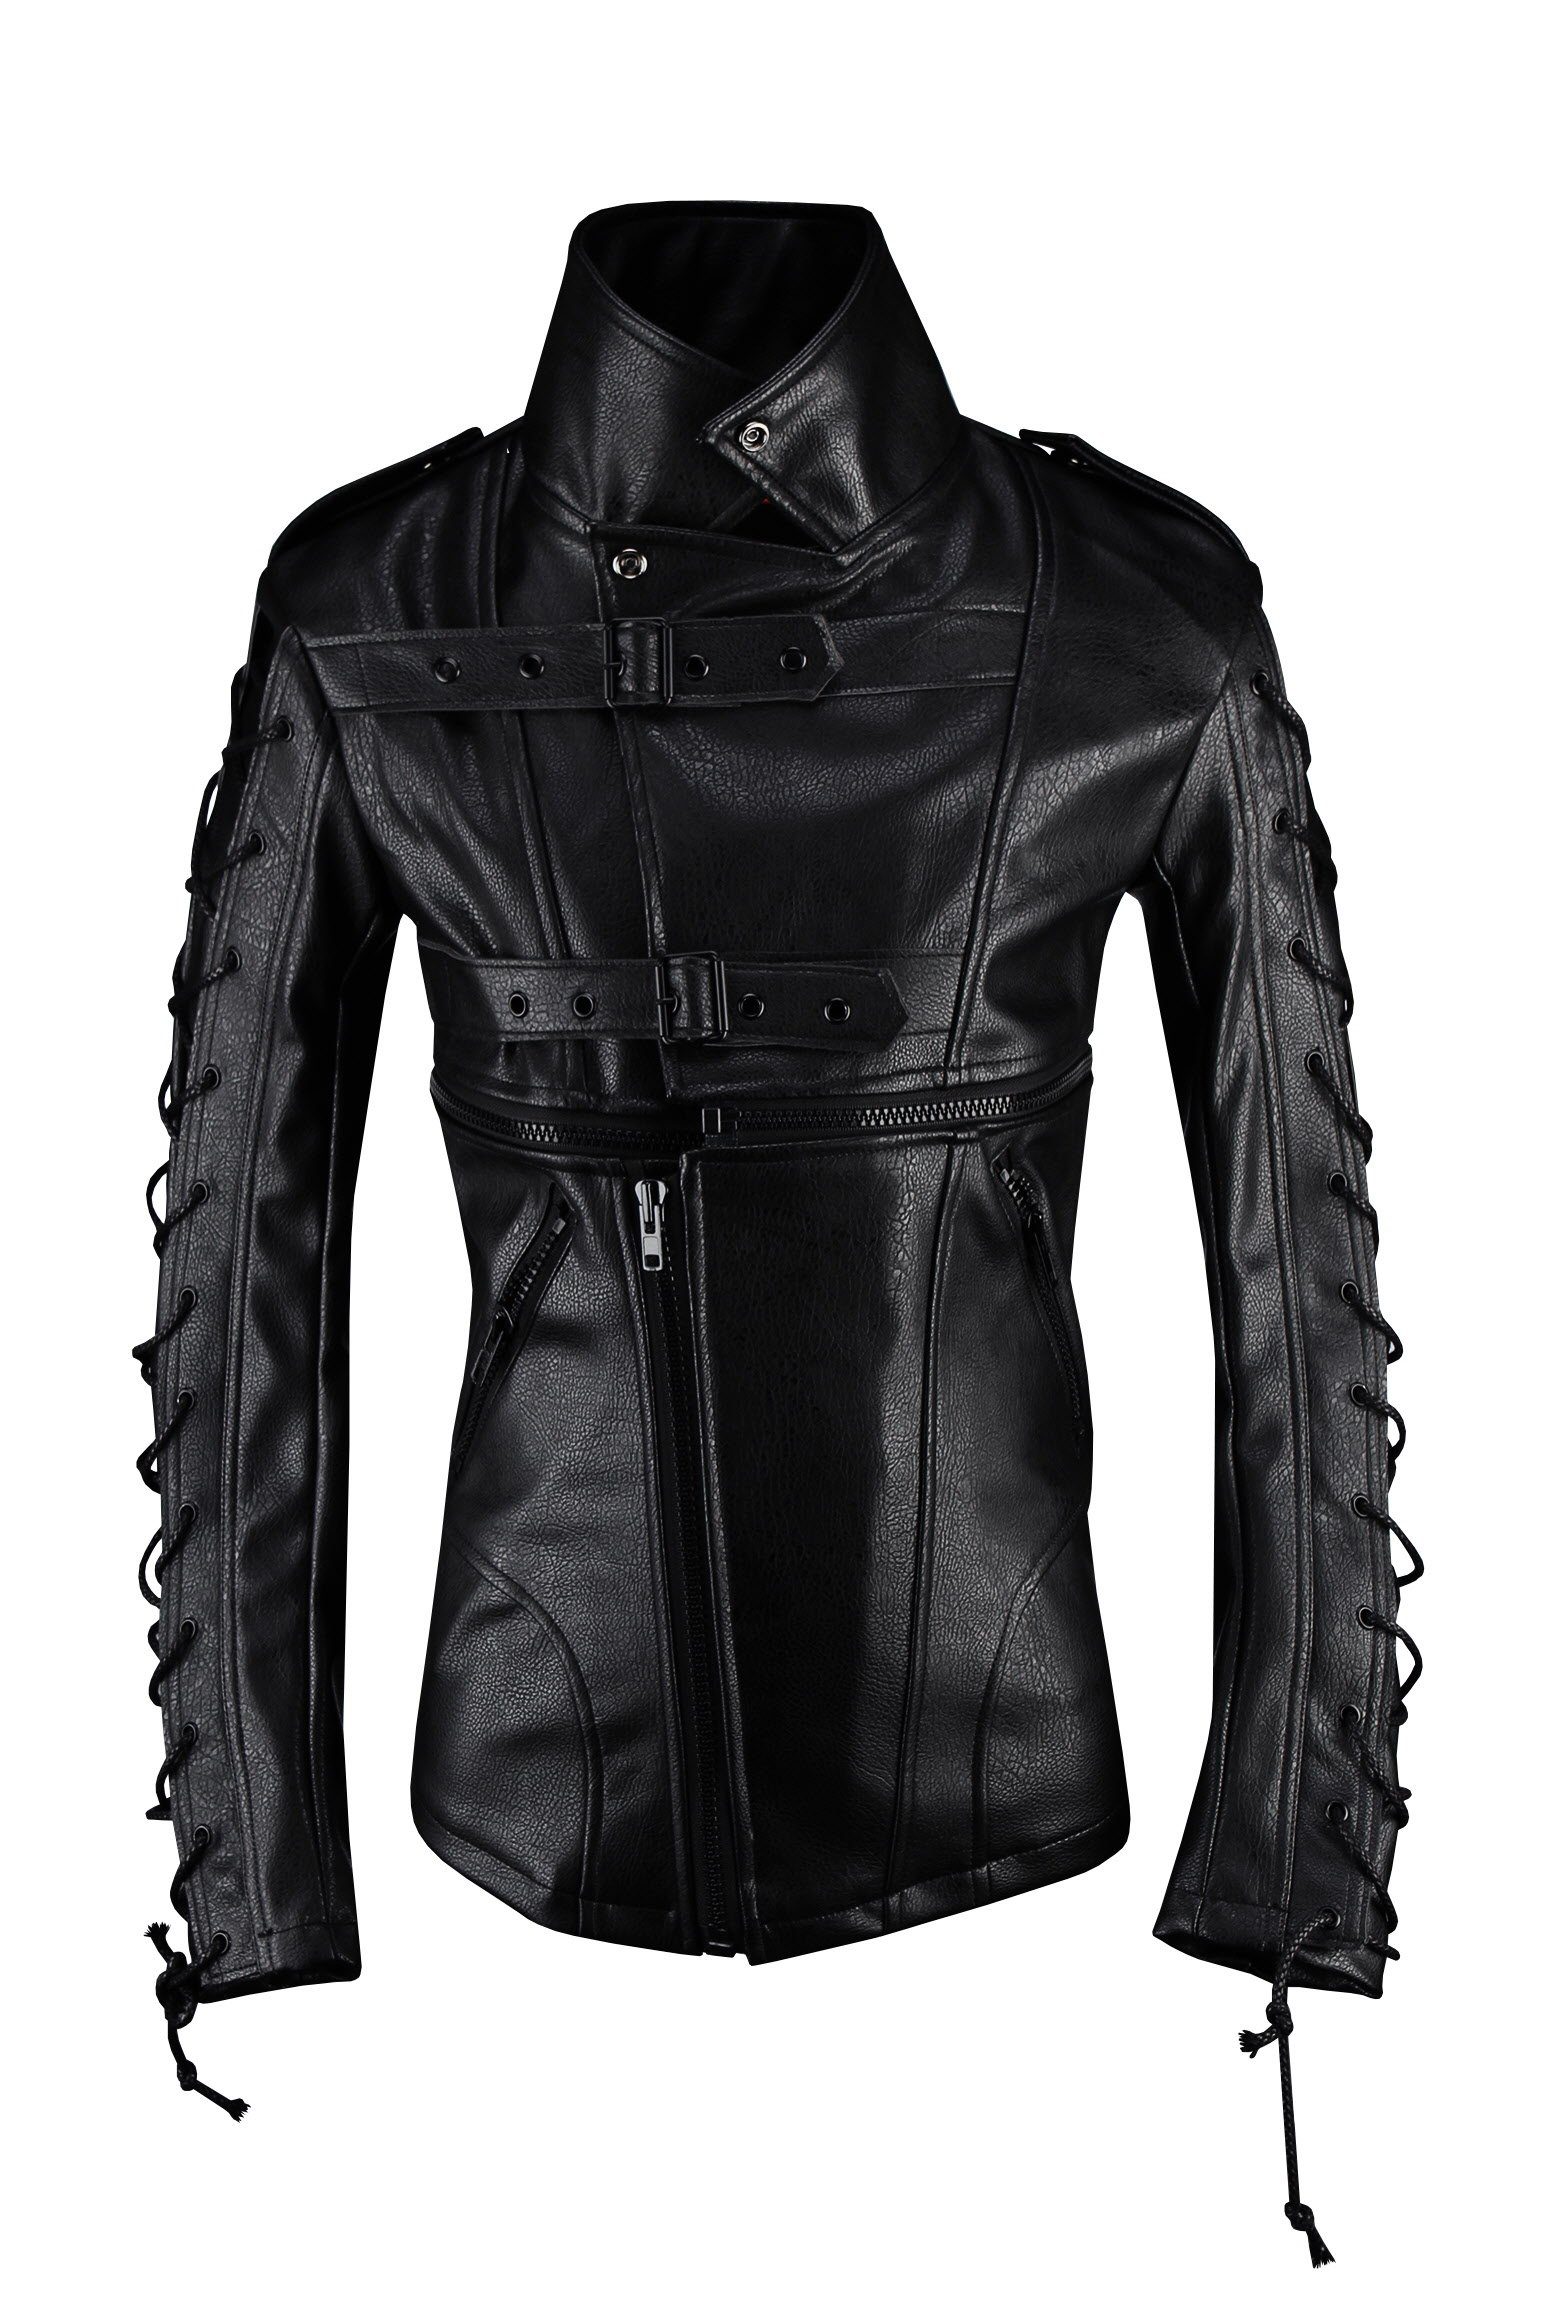 ByTheR Men's R Rope Laced Up Zipper Detail Slim Fit Faux Leather Biker Jacket M